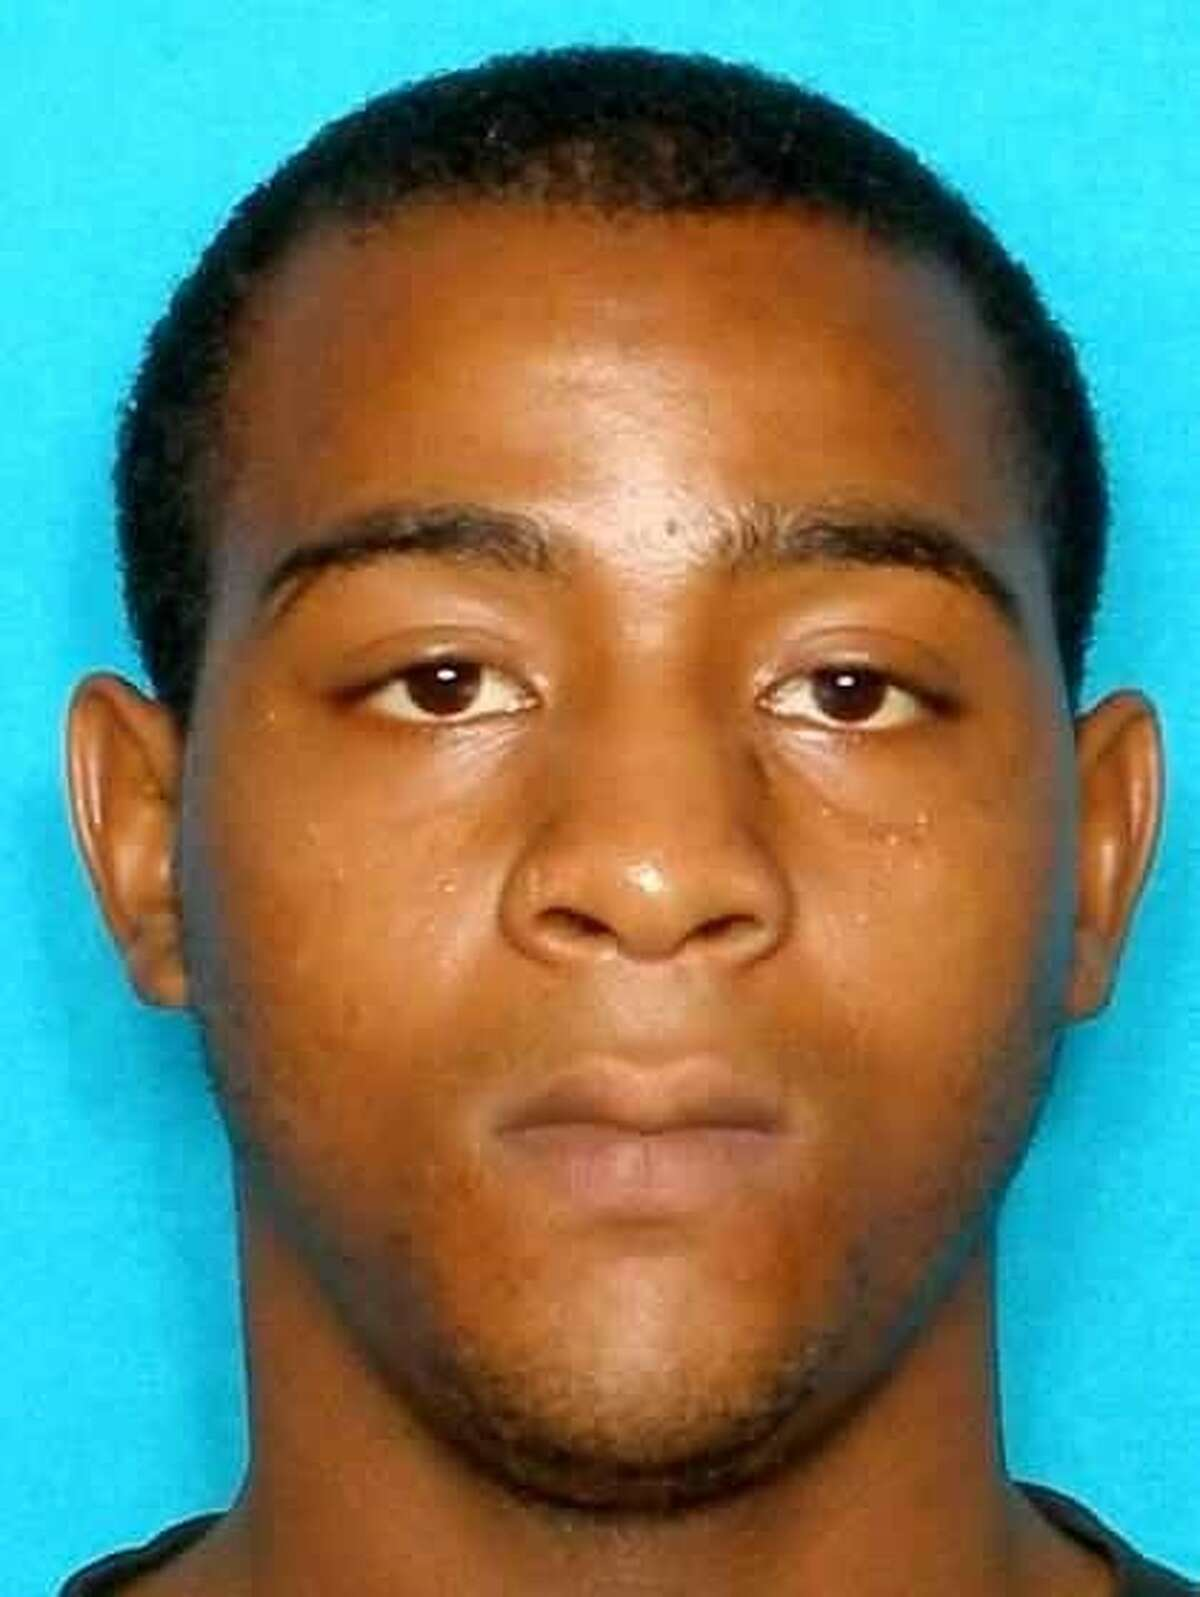 He is accused of shooting his father in the head on Christmas Eve.